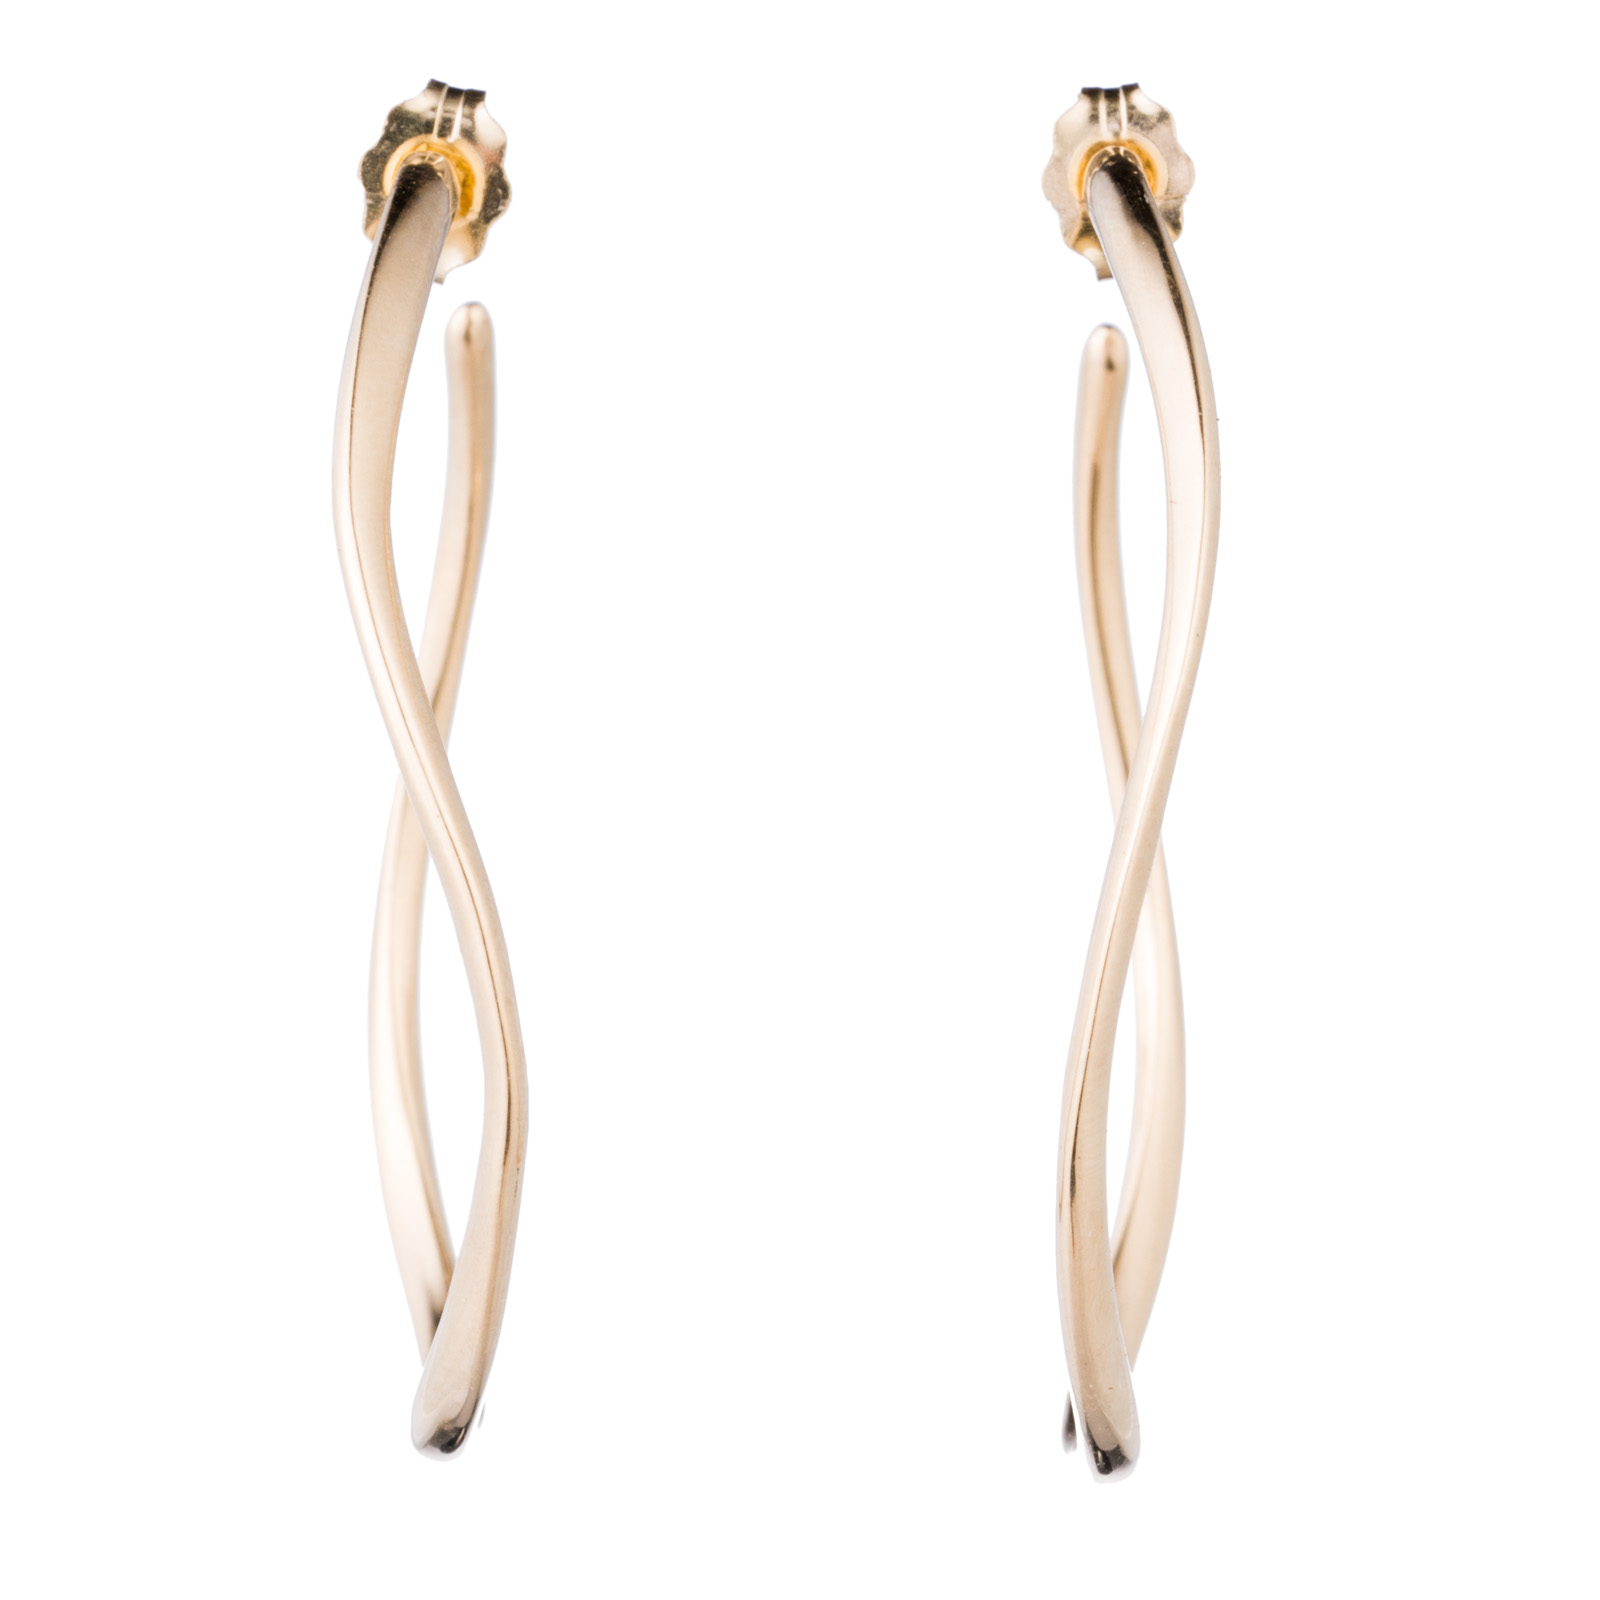 Show Road JewelryFeather Weight Hoops - Starting at $205, www.ShowRoadJewelry.com10% off with code givinggroupie through 12/28!